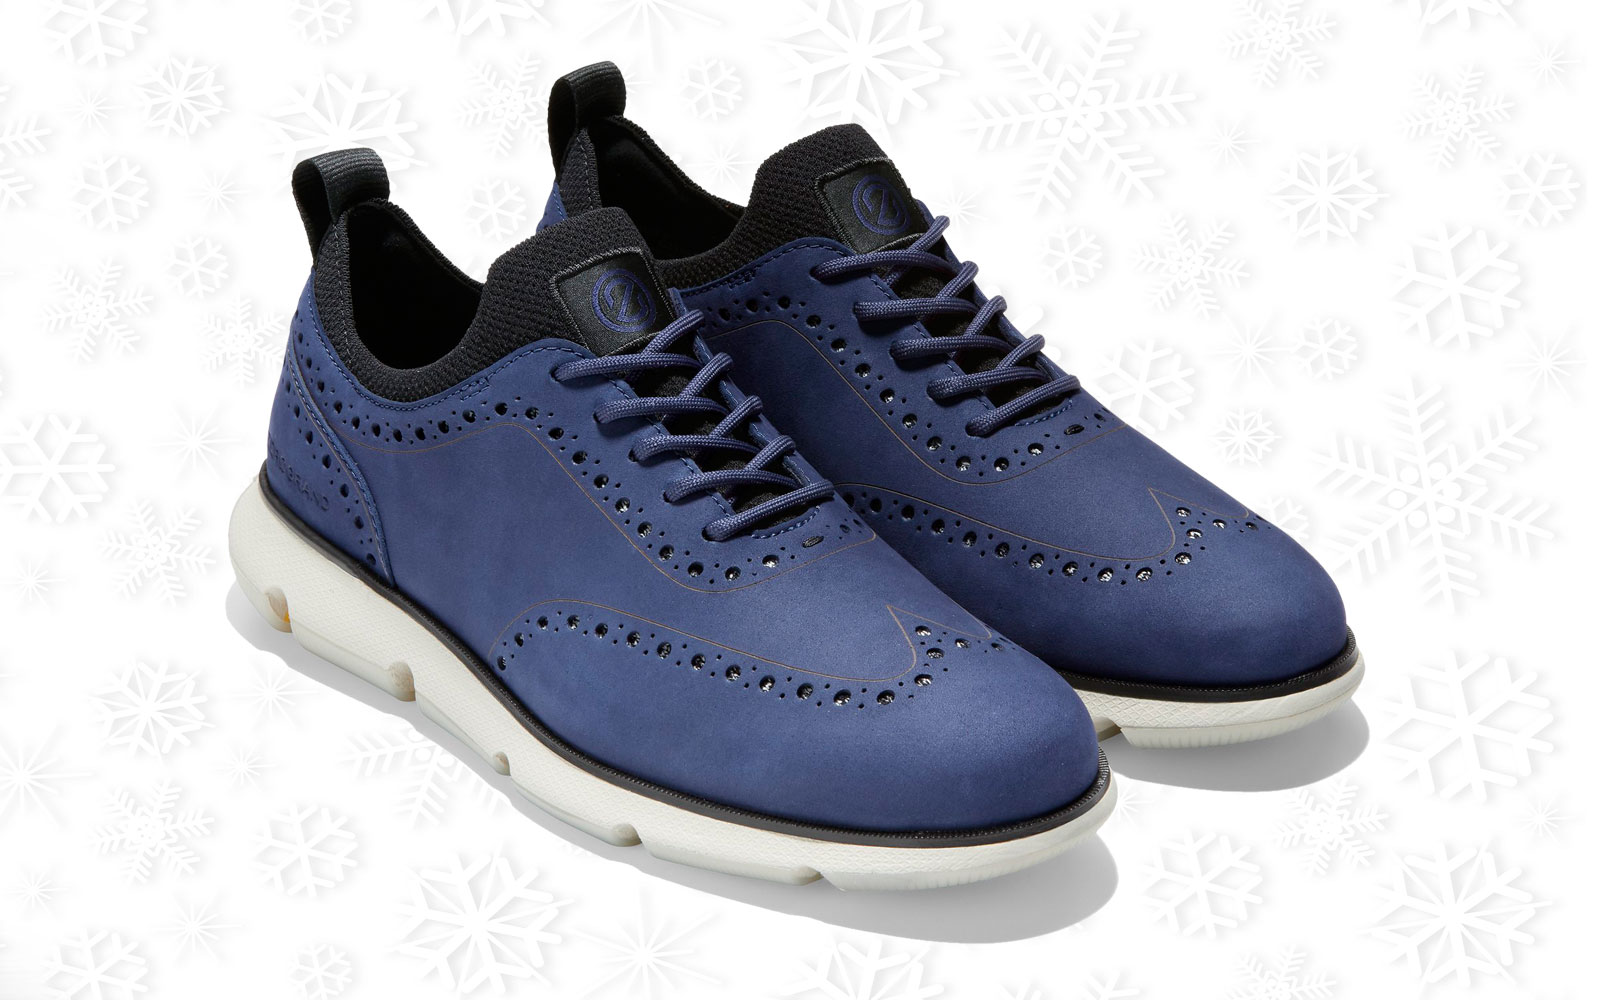 Casual Wingtip Oxford shoe gift